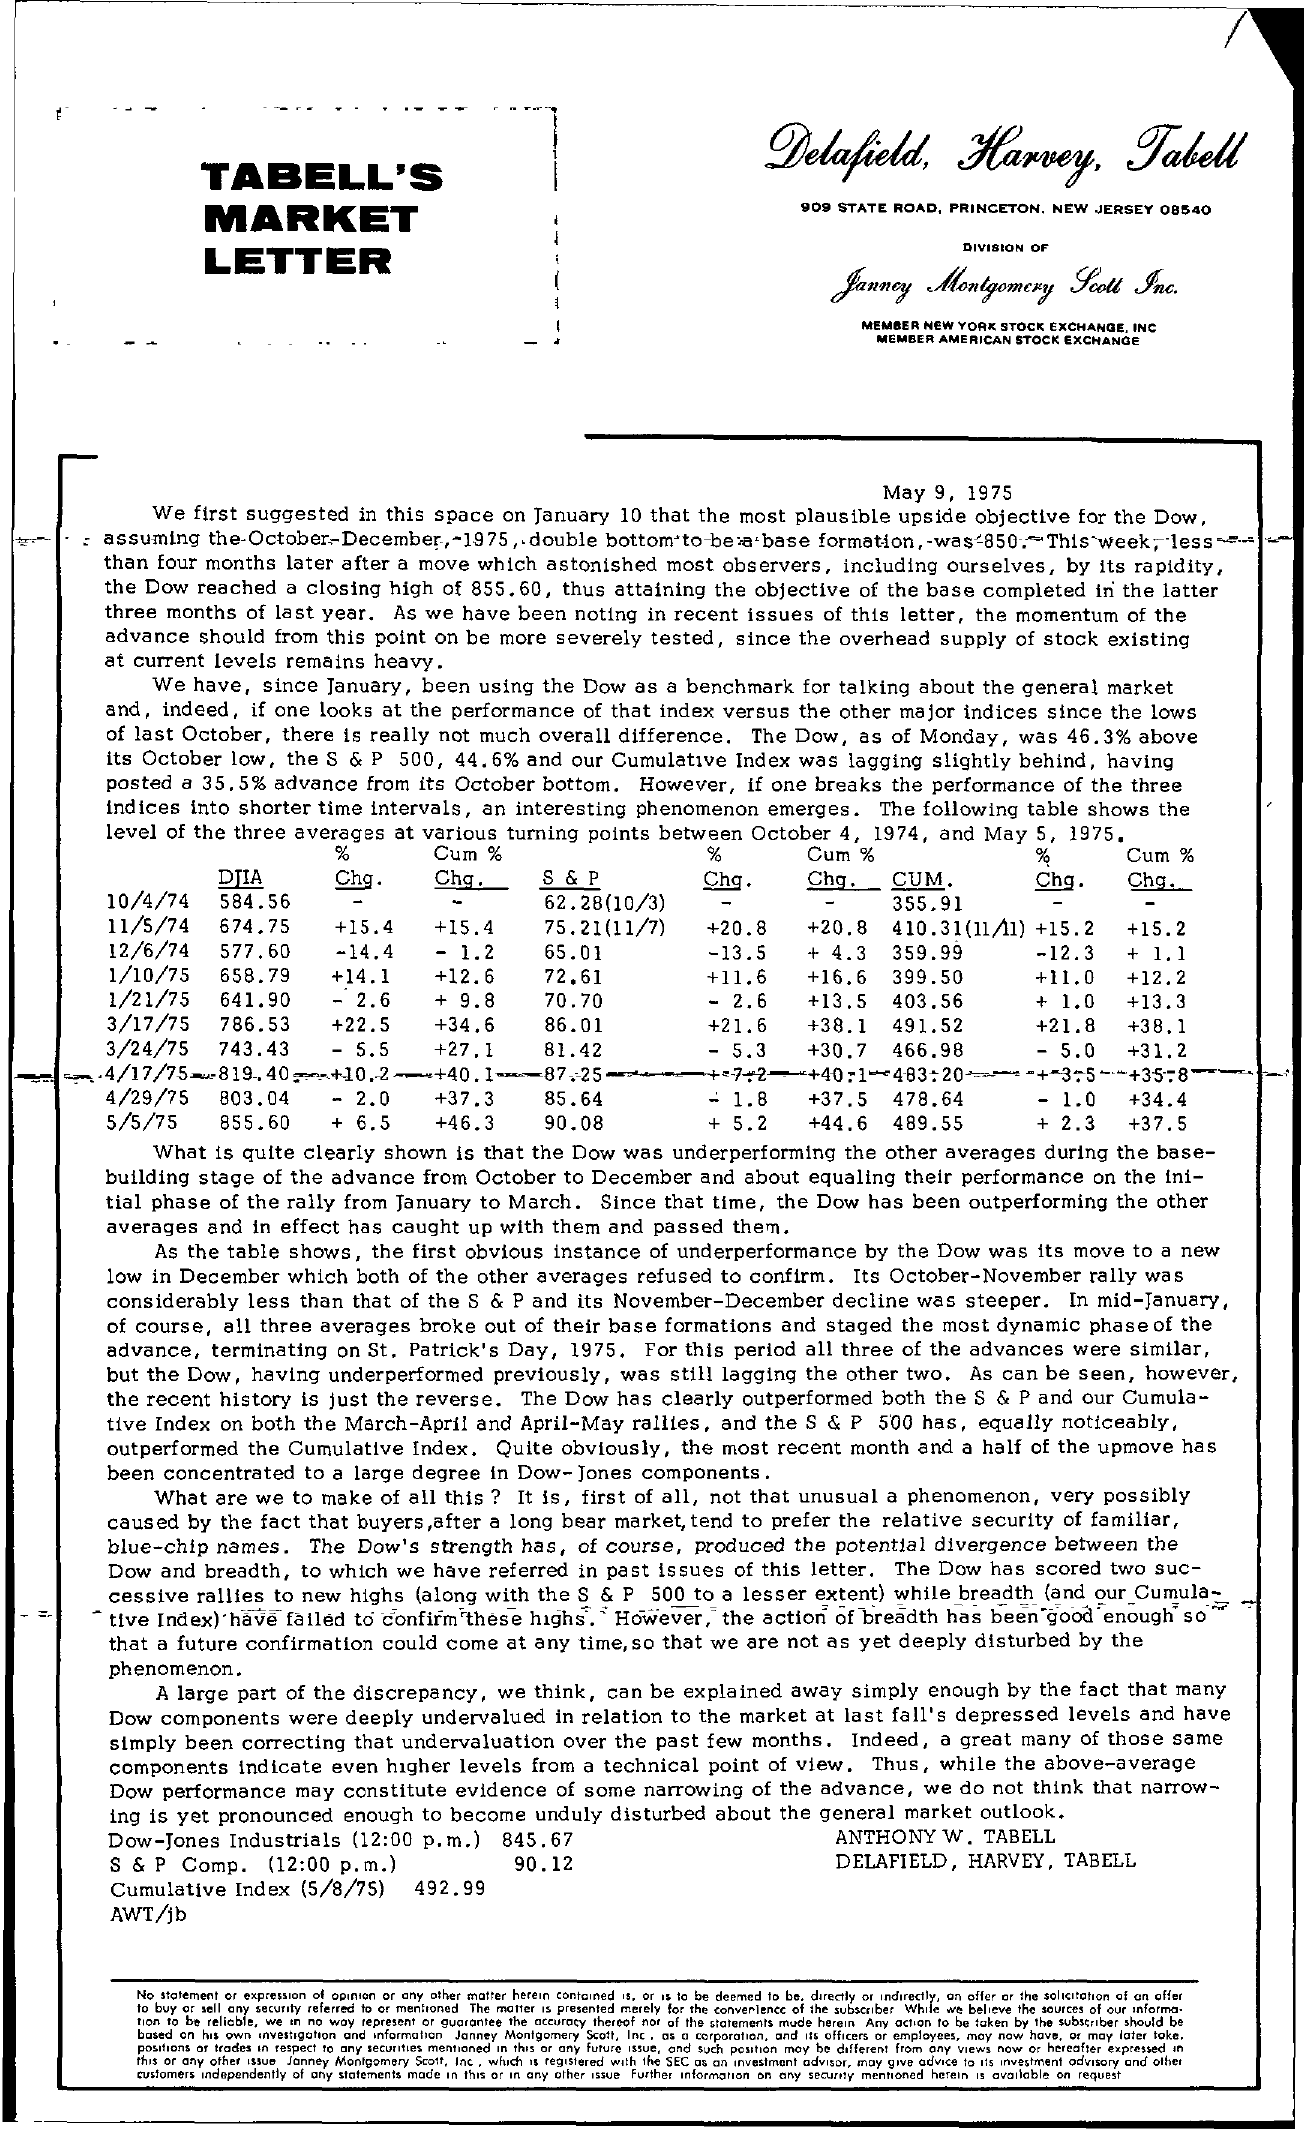 Tabell's Market Letter - May 09, 1975